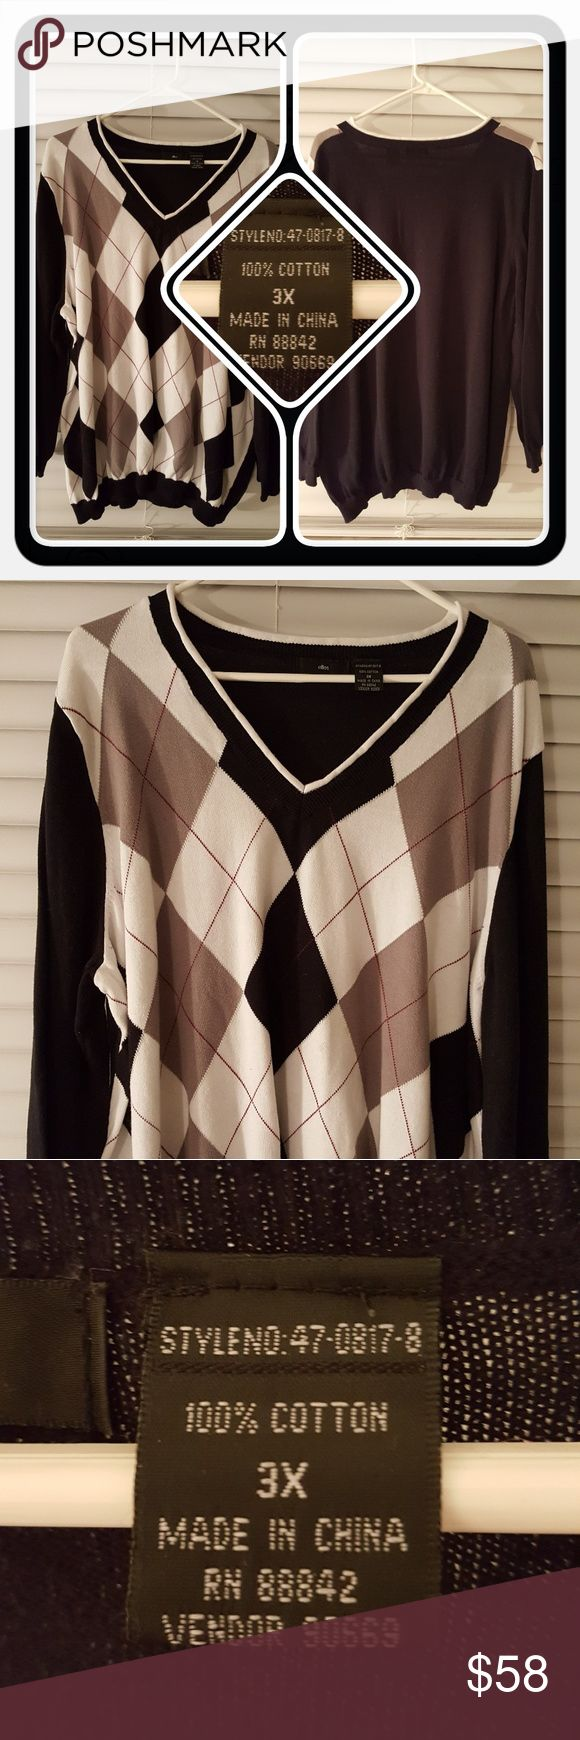 ❤ Woman's V Neck Argle Sweater Size 3X ❤ Euc Woman's Argle V Neck Sweater Size 3X From Woman Within Brand Is Ellos. This Sweater Is Stylish And Fits Roomy Great For Fall And Winter. Excellent Pre Loved Condition Accept For Minor Stains On Front Pictures In Last Photo 🚫 PAYPAL 🚫 TRADES 🚫 OFFERS PRICE IS FIRM ❤ Woman Within Sweaters V-Necks